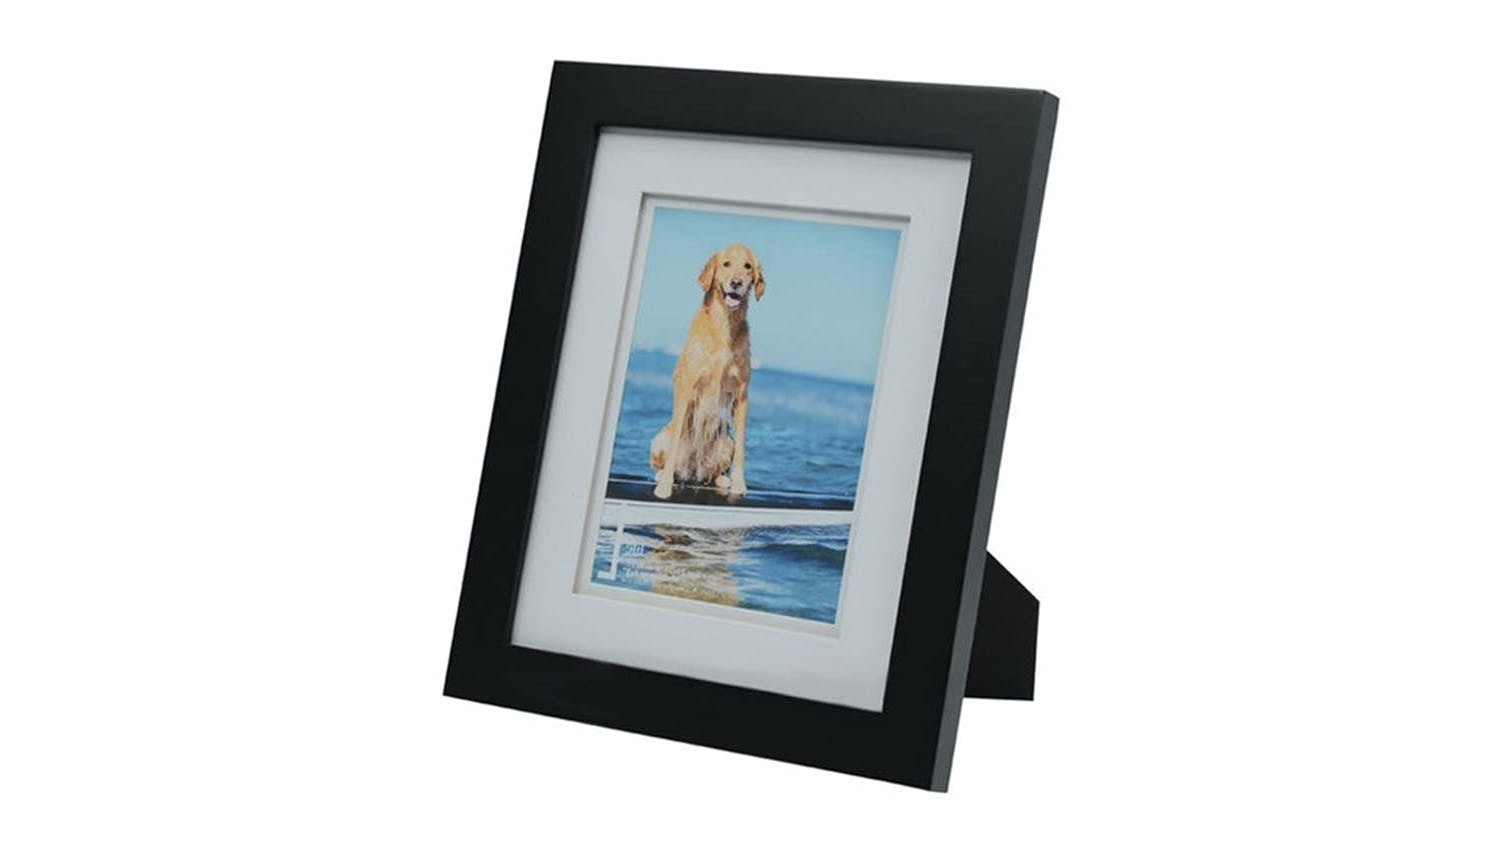 UR1 Life 9x11 with 6x8 Opening Photo Frame - Black